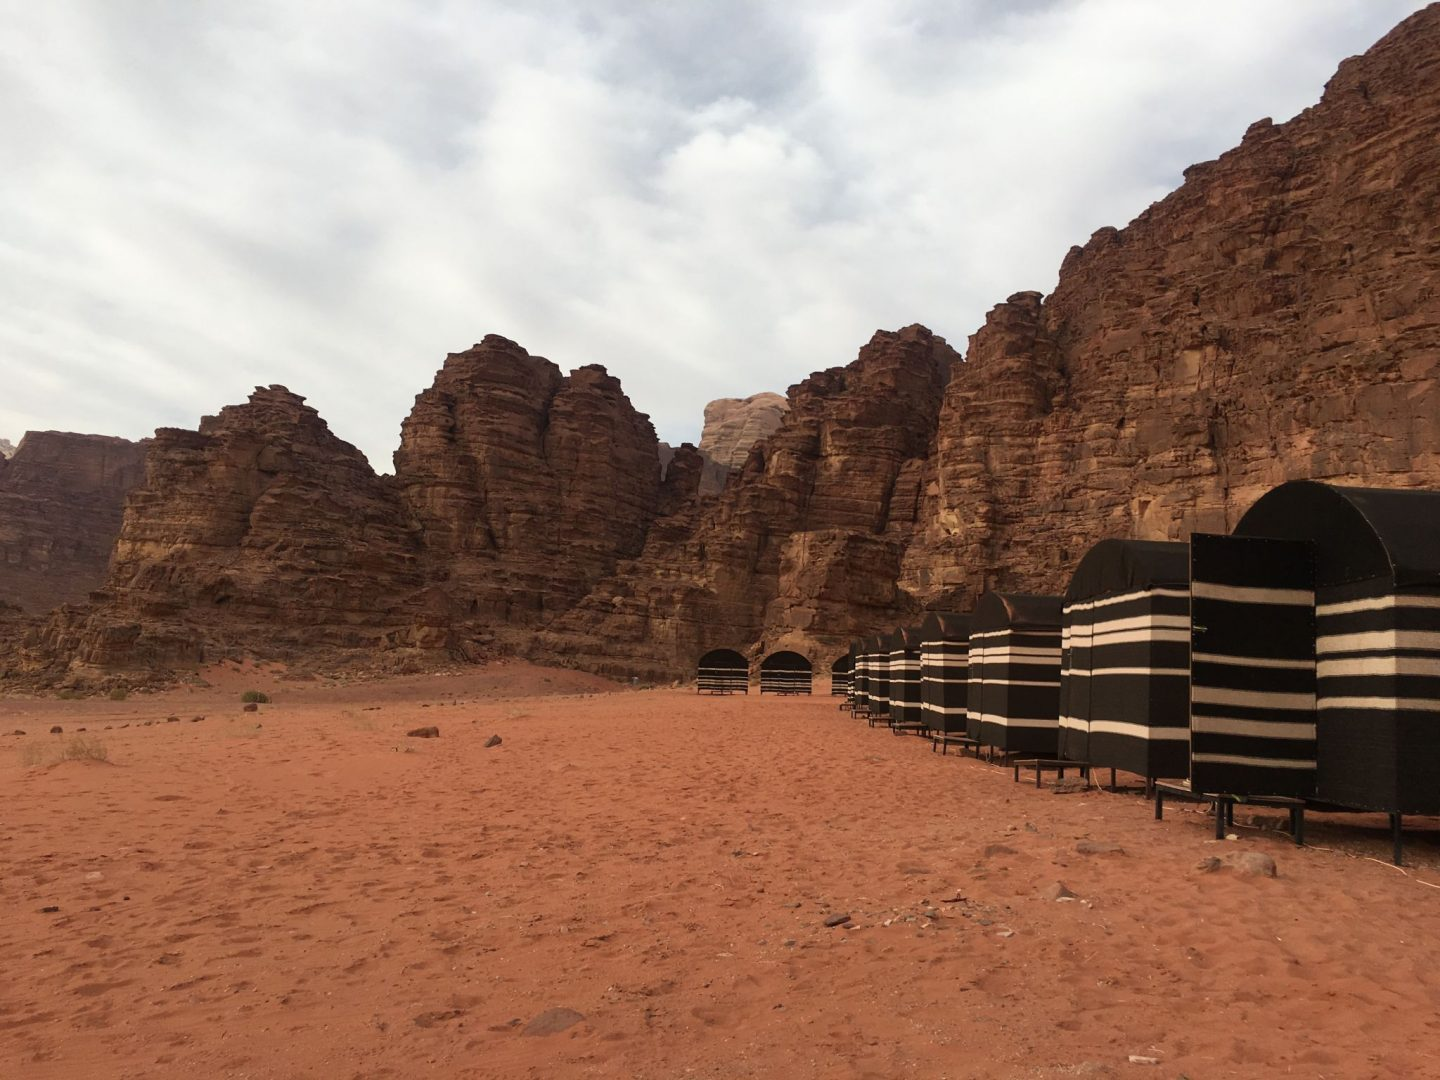 Itinerary for 3 nights in Jordan – The Dead Sea, Petra and Wadi Rum